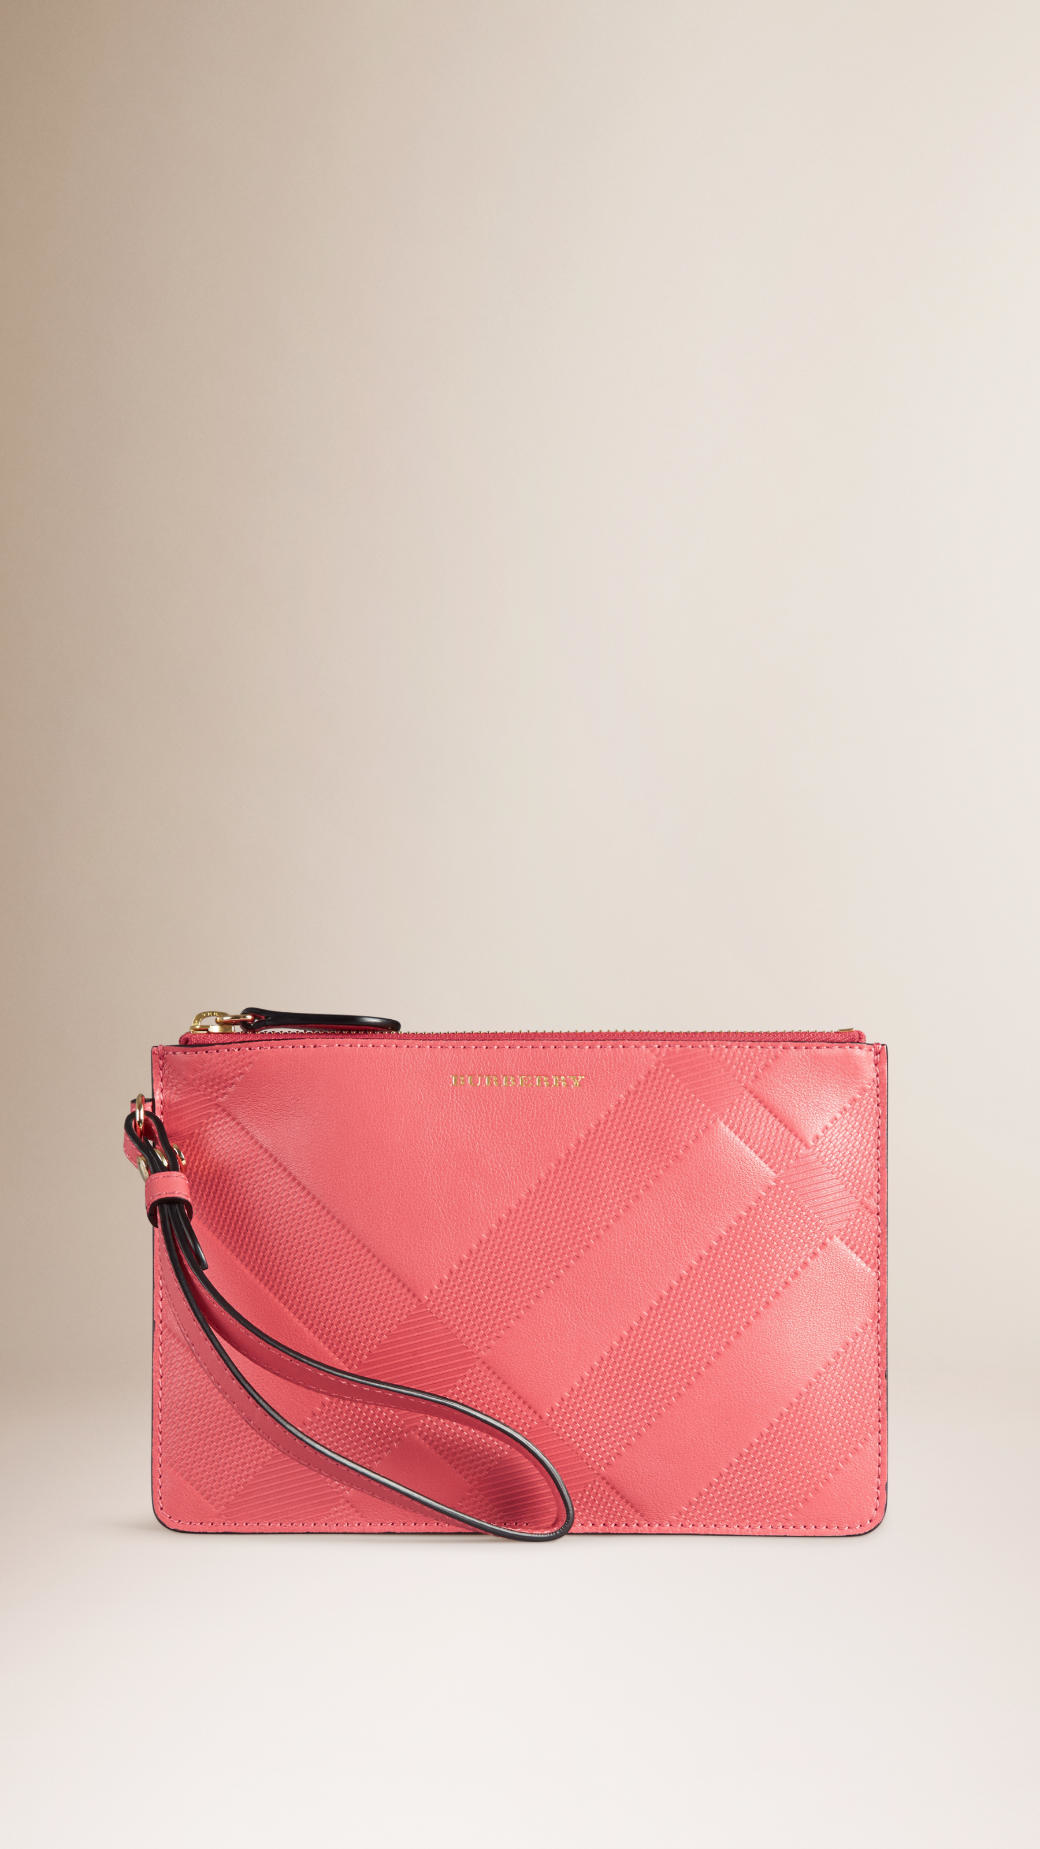 3852f5606ddd Burberry Check Embossed Leather Pouch in Pink - Lyst